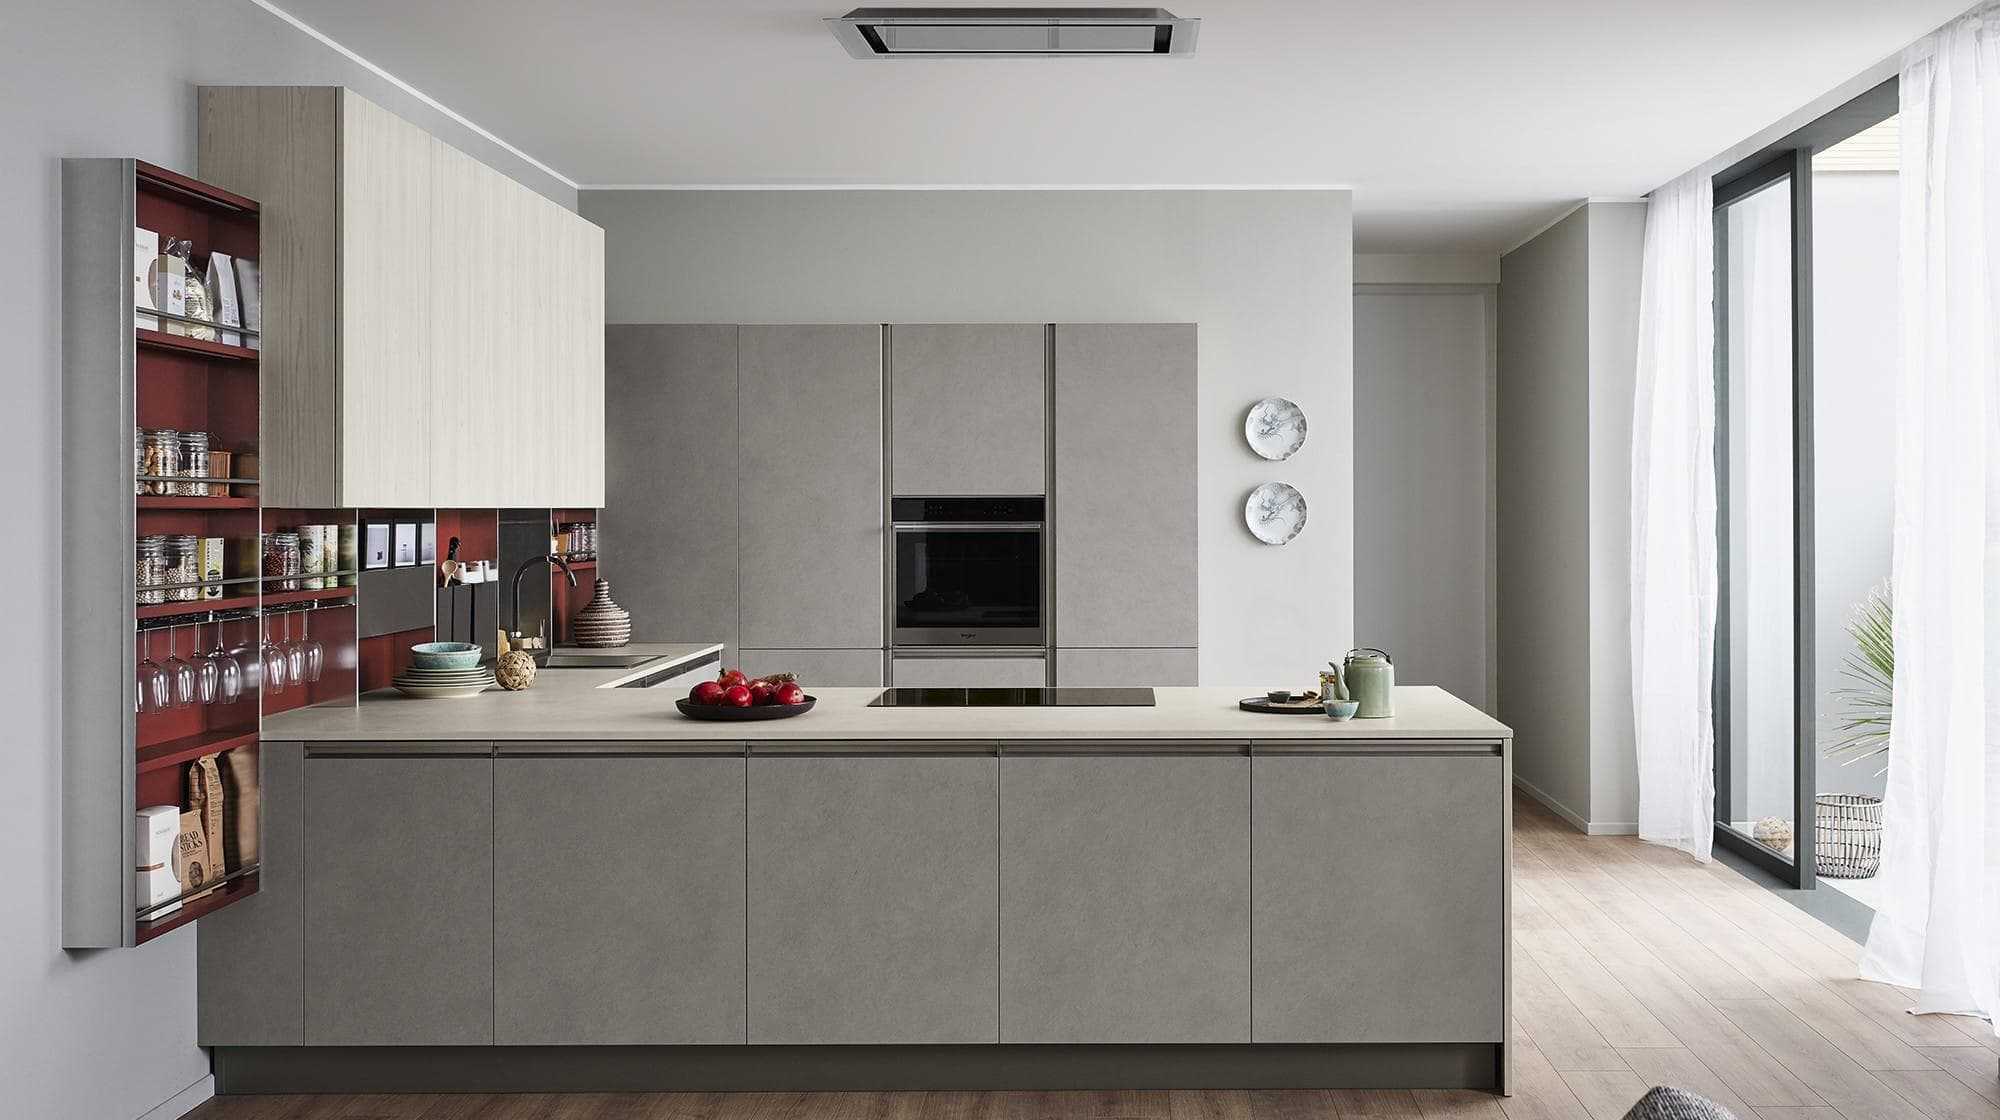 Is your kitchen a golden triangle kitchen?